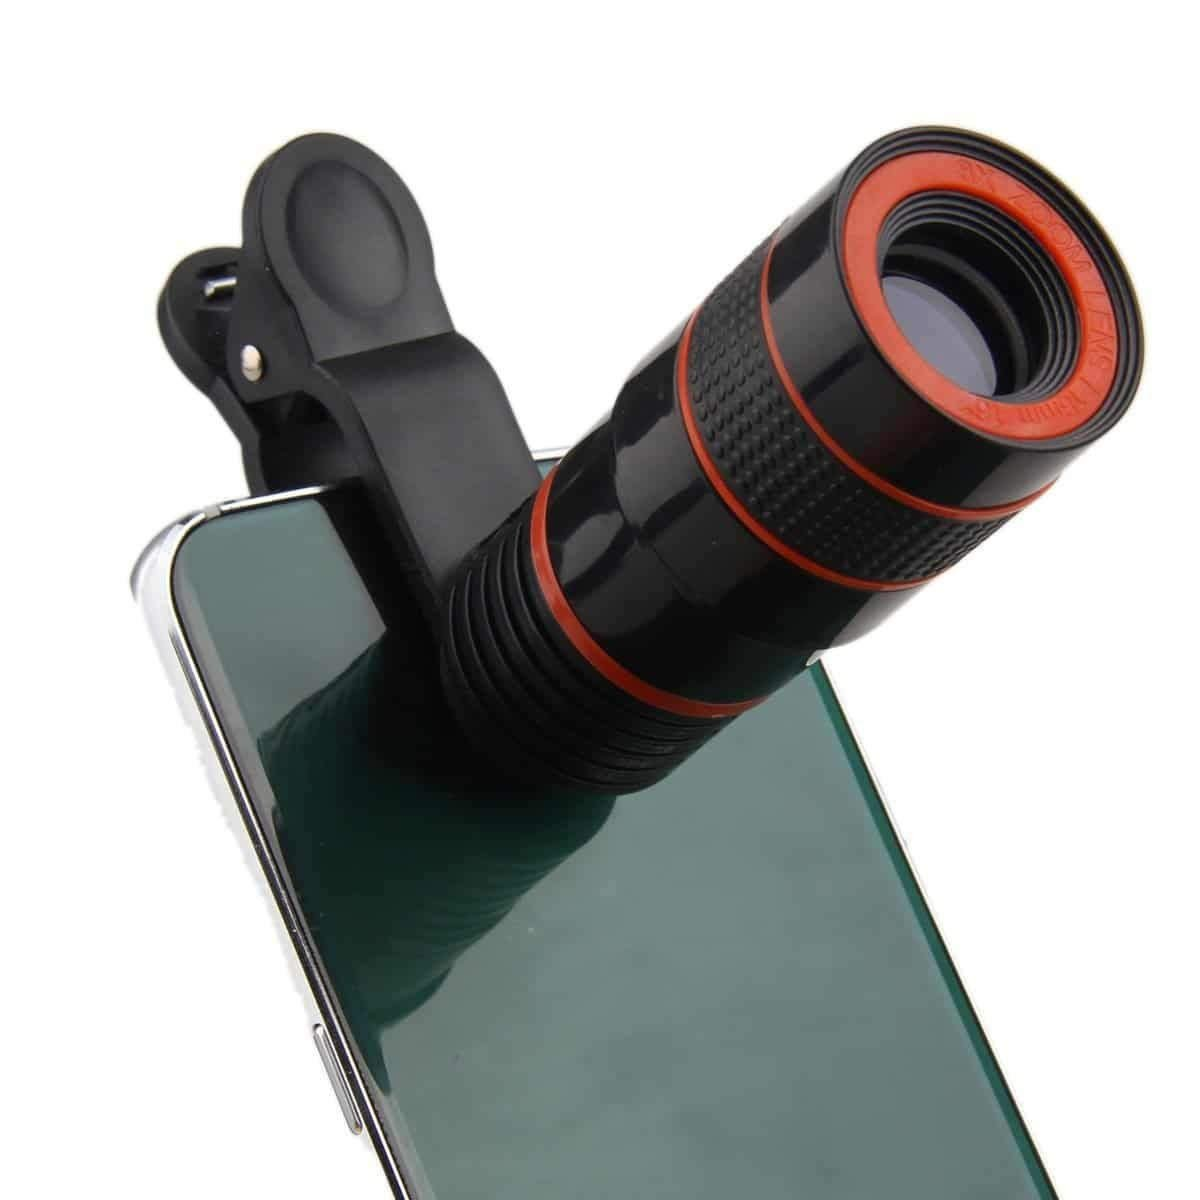 I-Sonite (Black 8X Zoom) Universal Optical Magnifier Telescope Phone Camera Lens Kit, Manual Focus for Also Fit for Oukitel K3 by I-Sonite